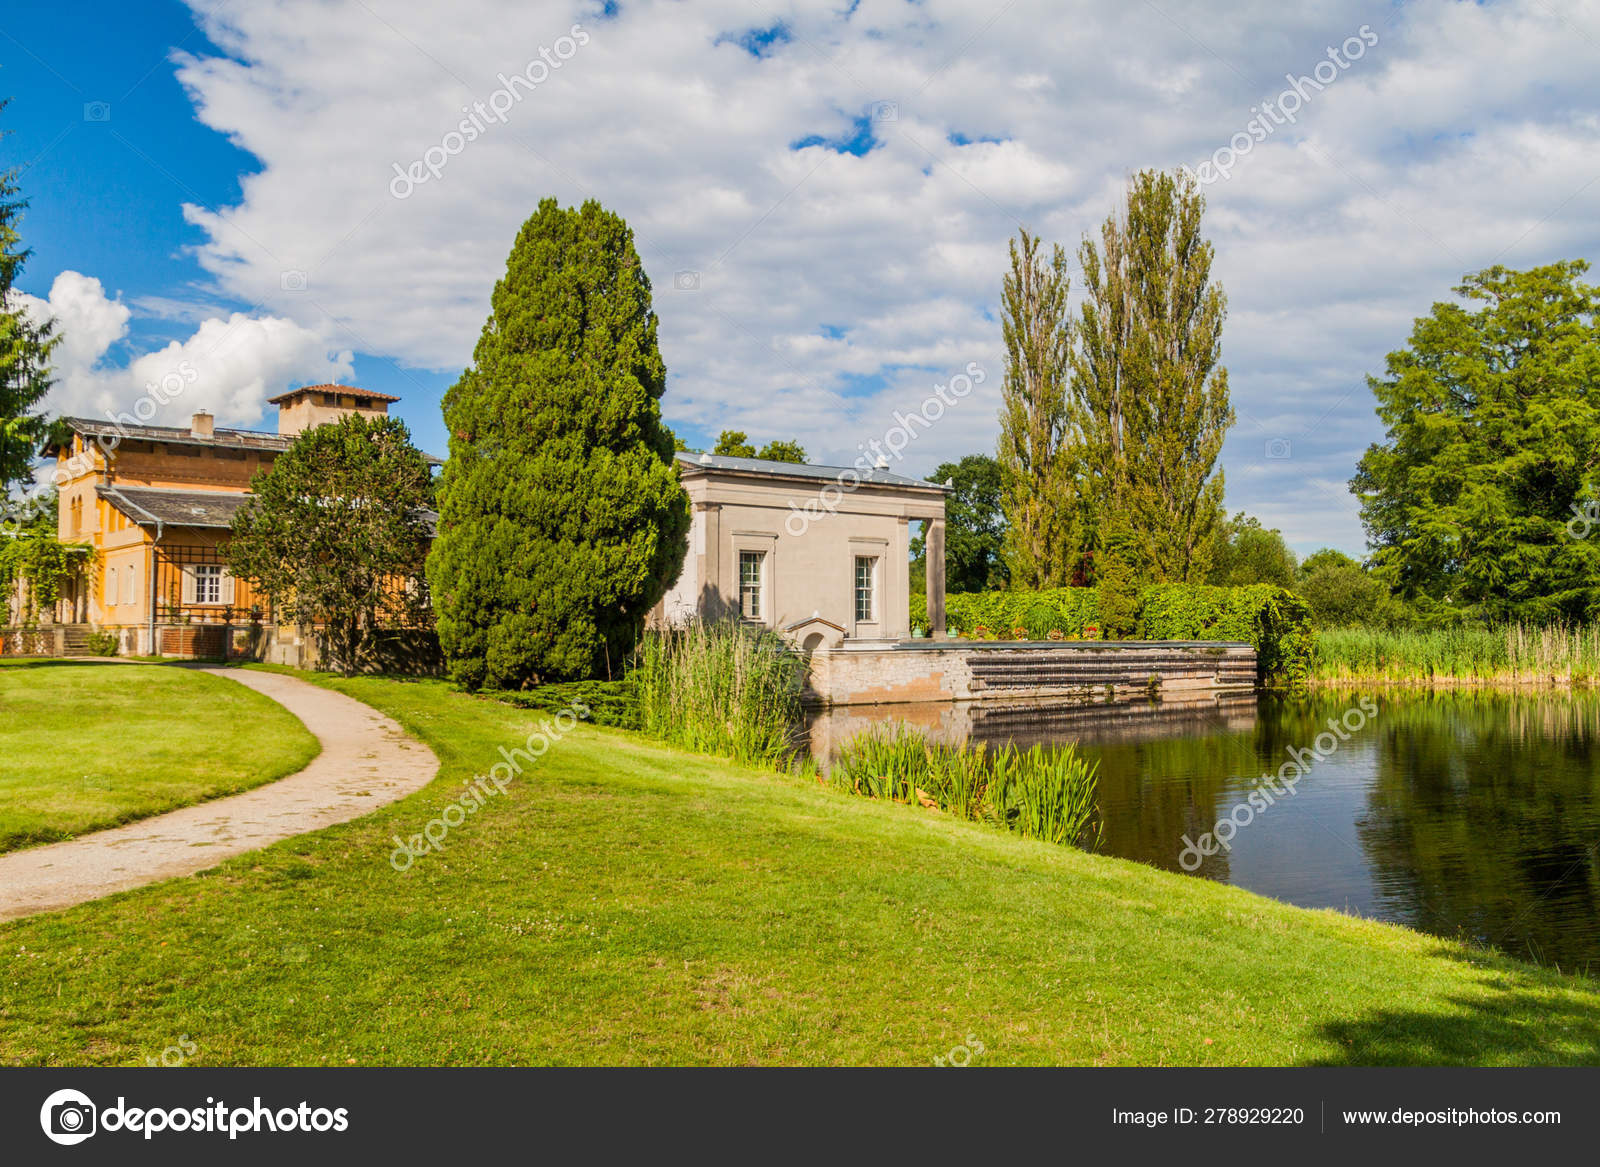 Park Sanssouci Garden Potsdam Berlin Botanical Green Decorative Germany Tree Grass Beautiful Nature Summer Background Style Landscape Europe History Landmark Heritage Natural Fre Stock Photo C Mathes 278929220